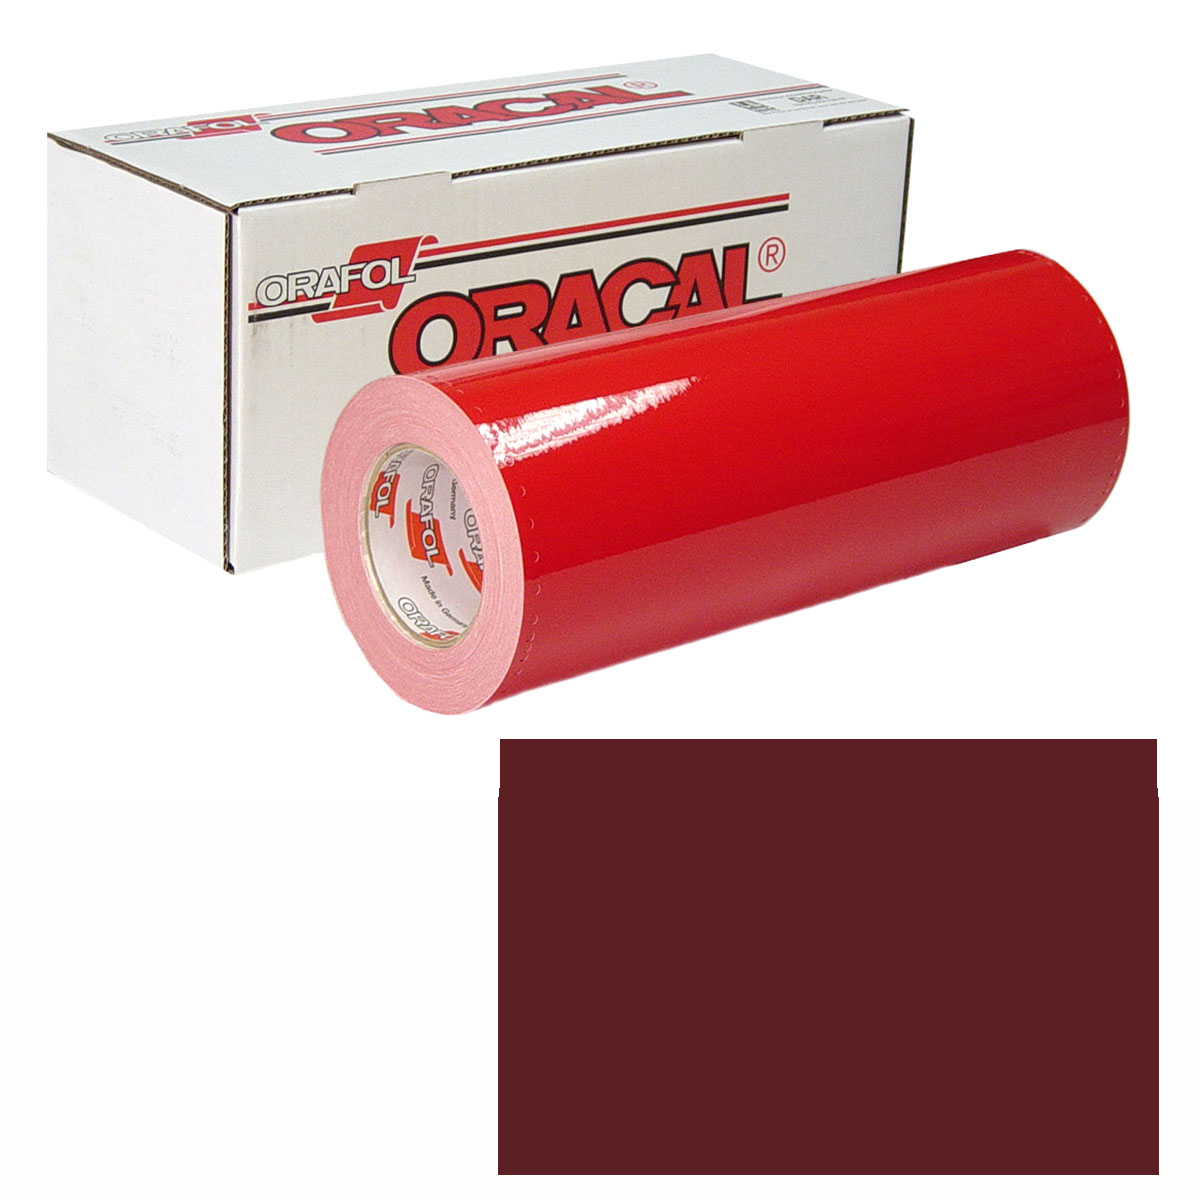 ORACAL 951M Unp 48In X 10Yd 369 Red Brown